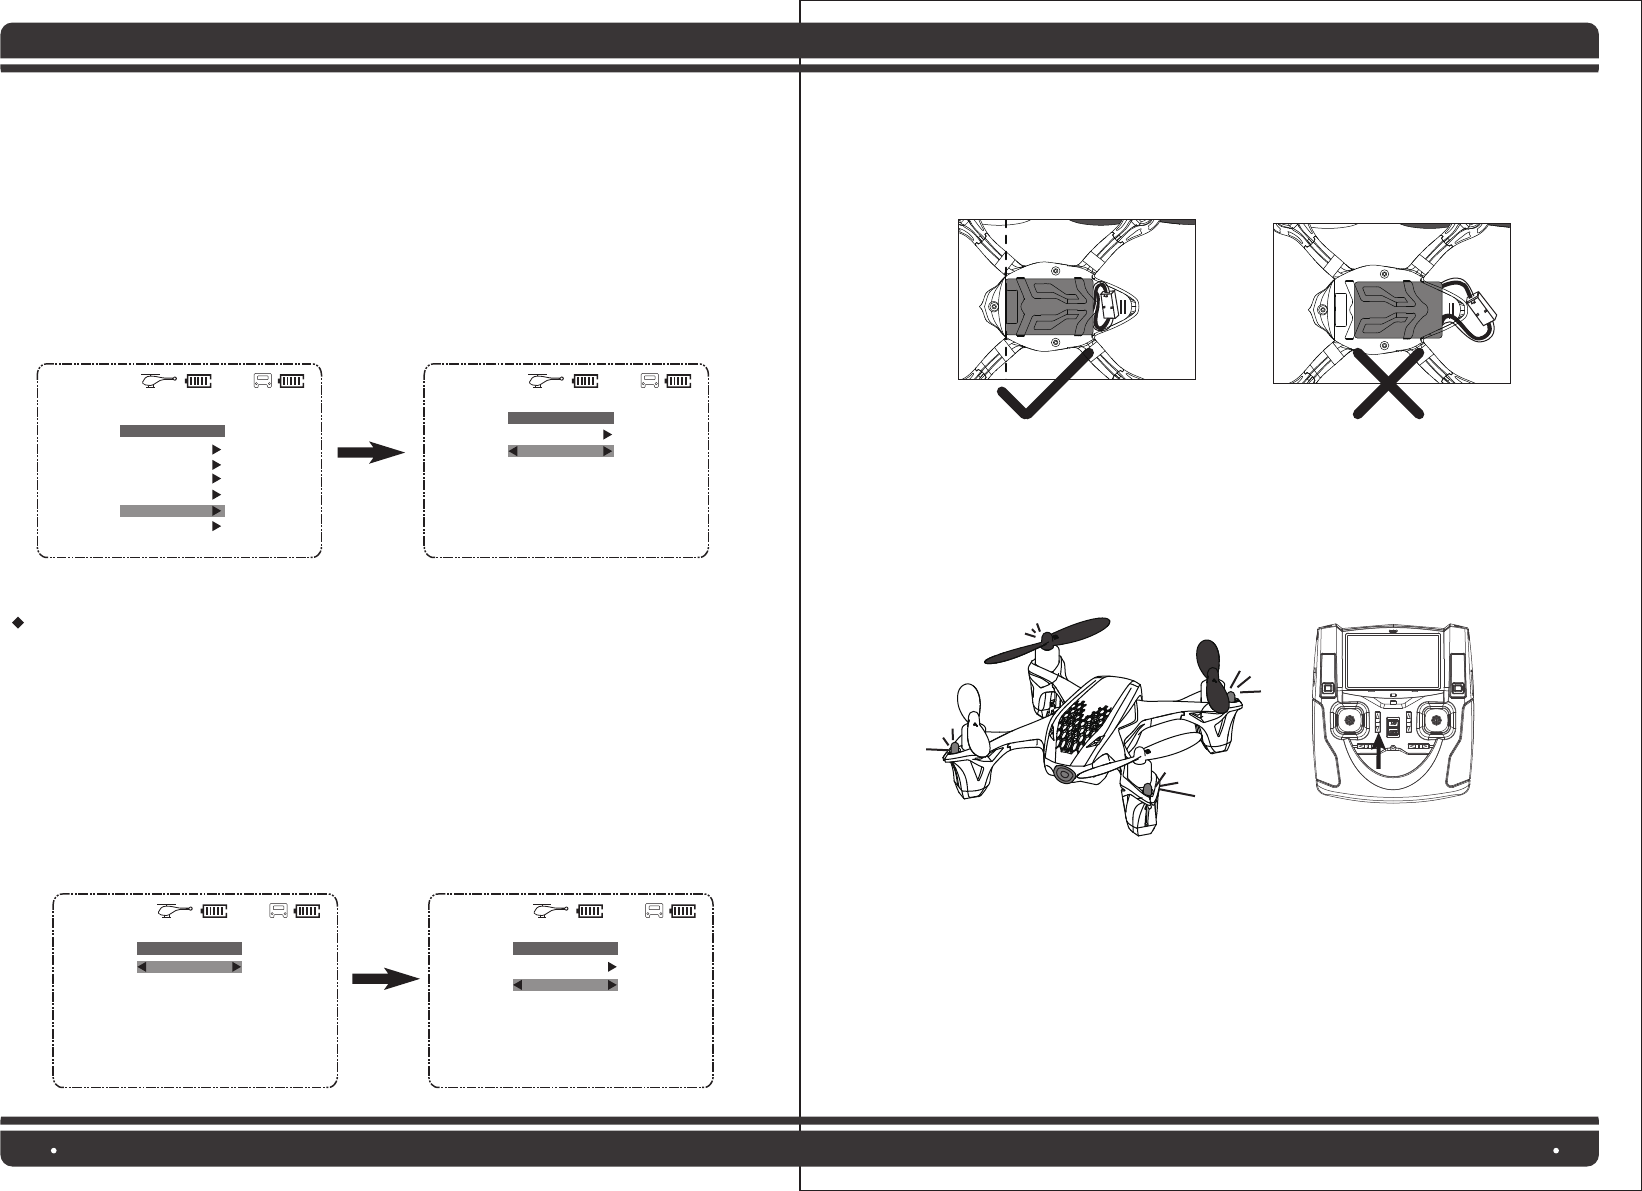 Hubsan Hbs H107dtx Transmitter User Manual H107 V2 20120905 Wiring Diagram The X4 11the X414